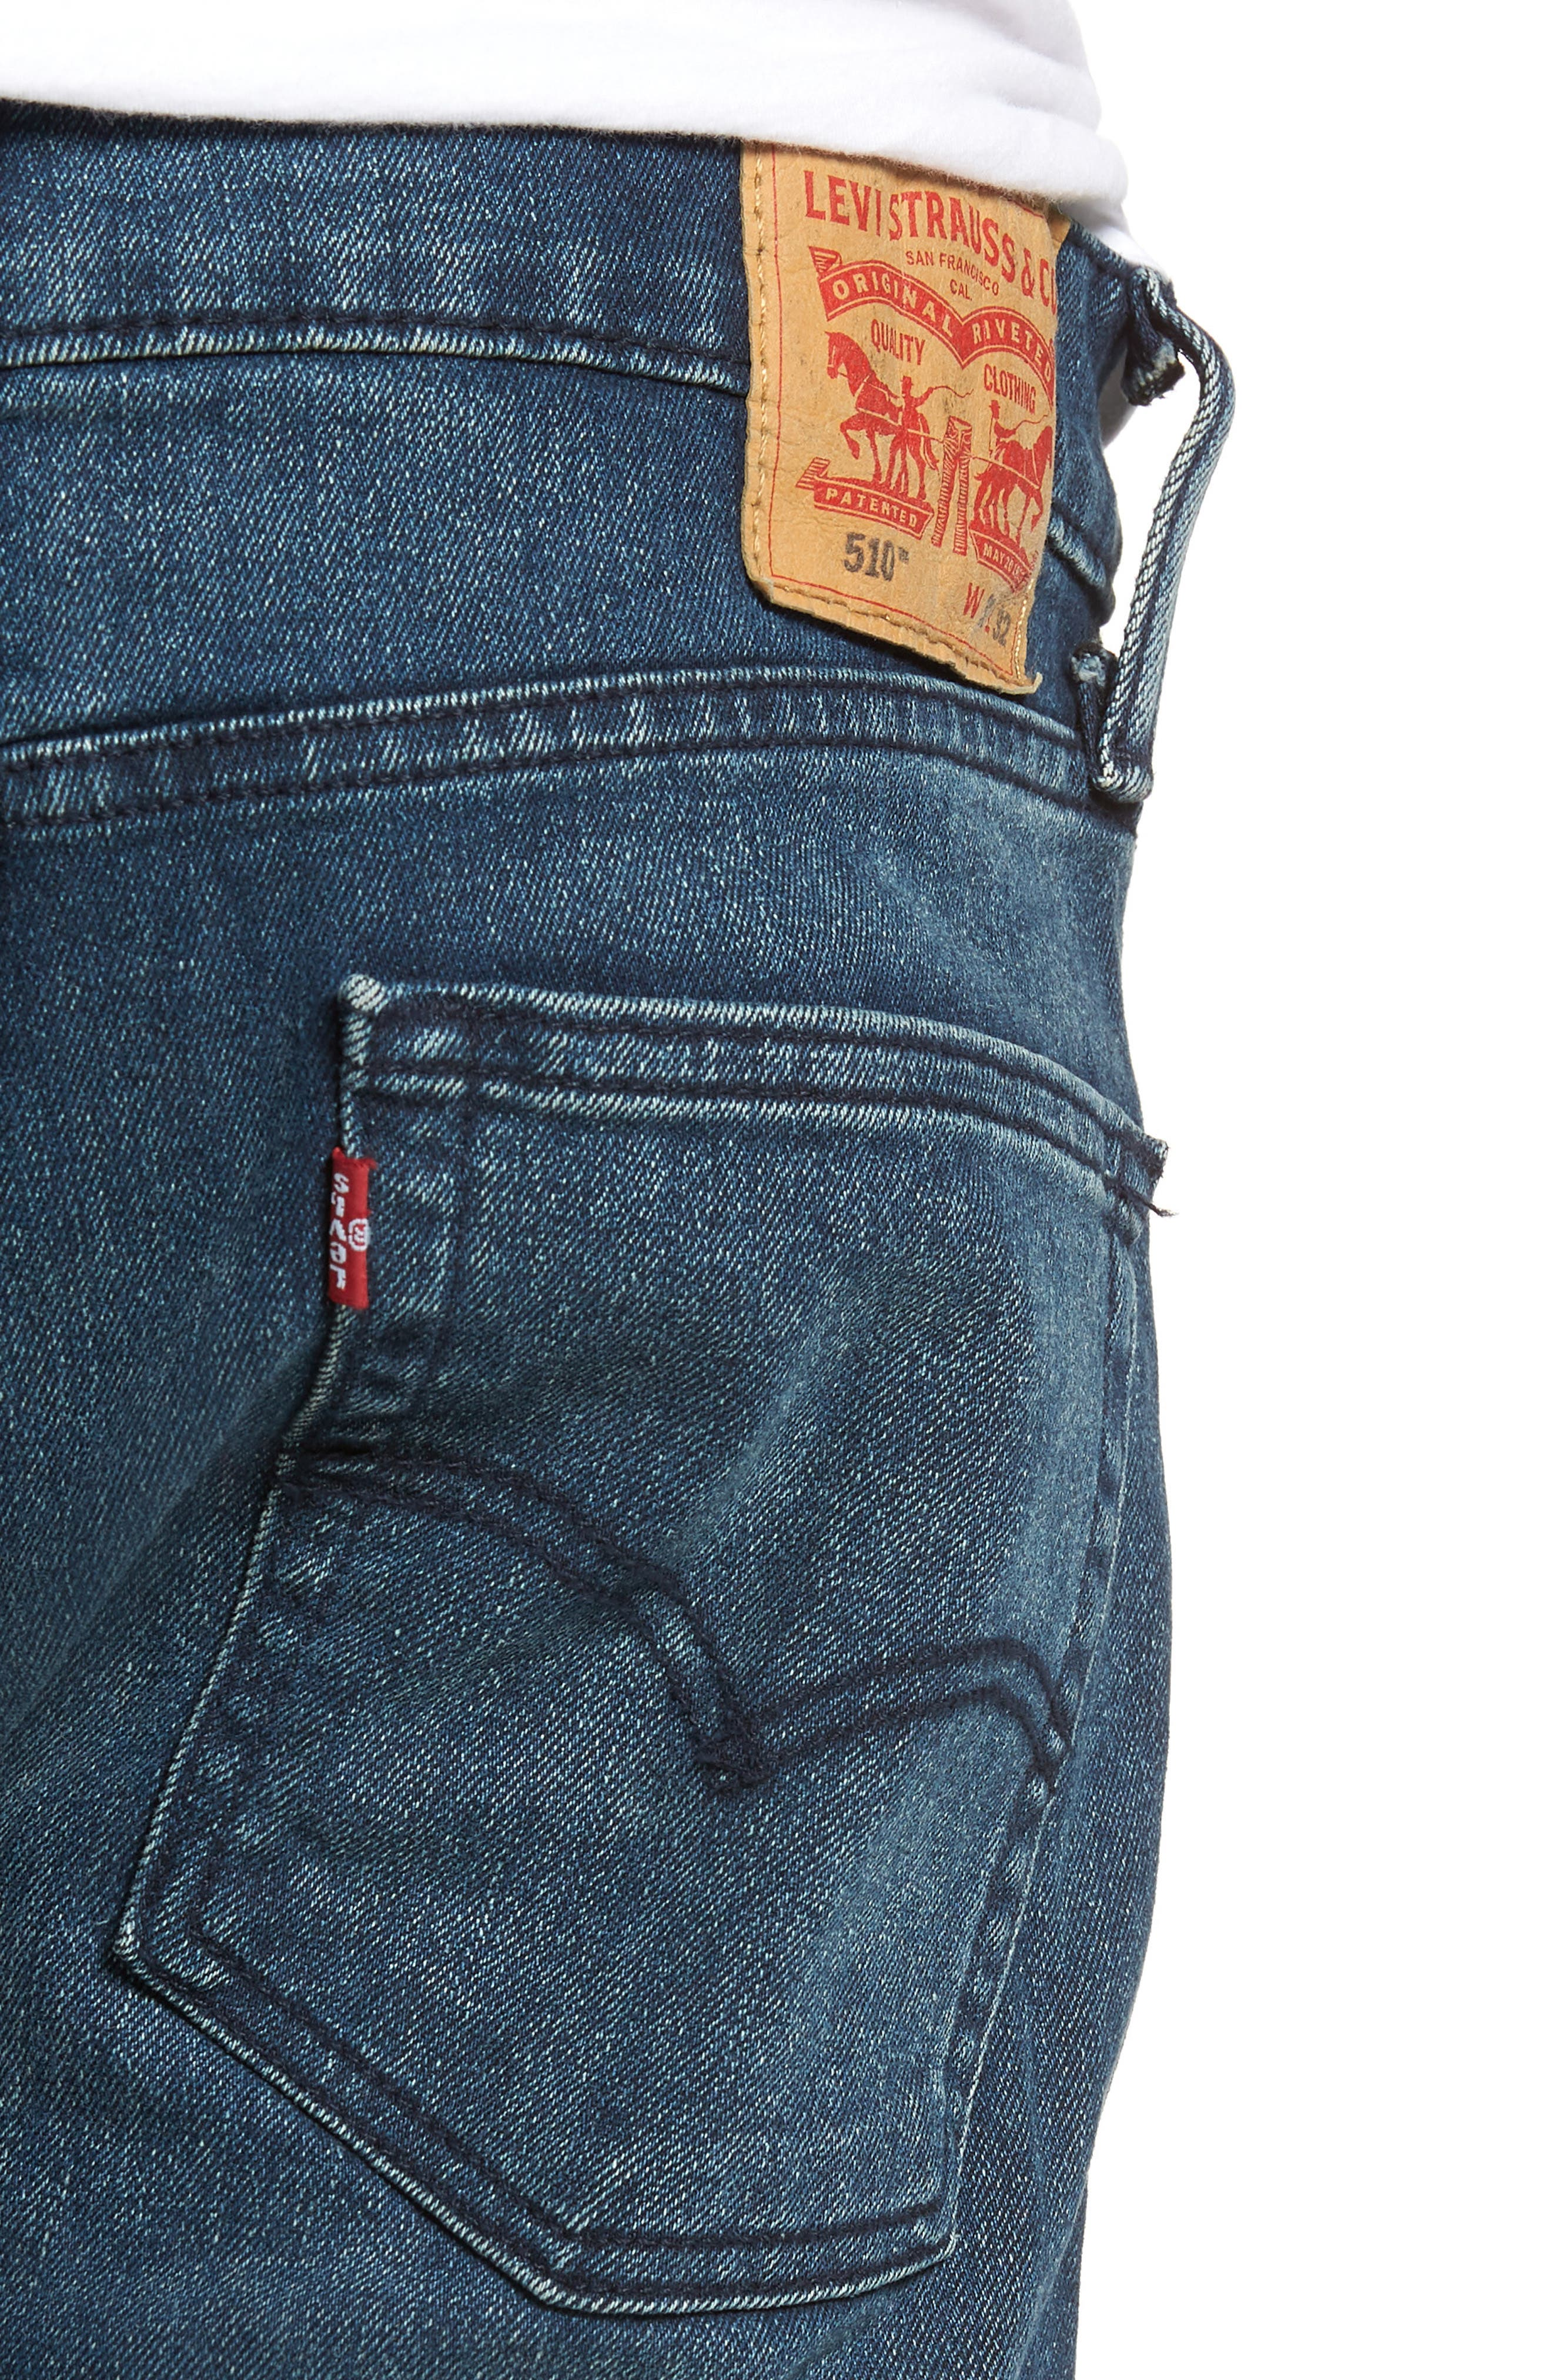 510<sup>™</sup> Skinny Fit Jeans,                             Alternate thumbnail 4, color,                             408